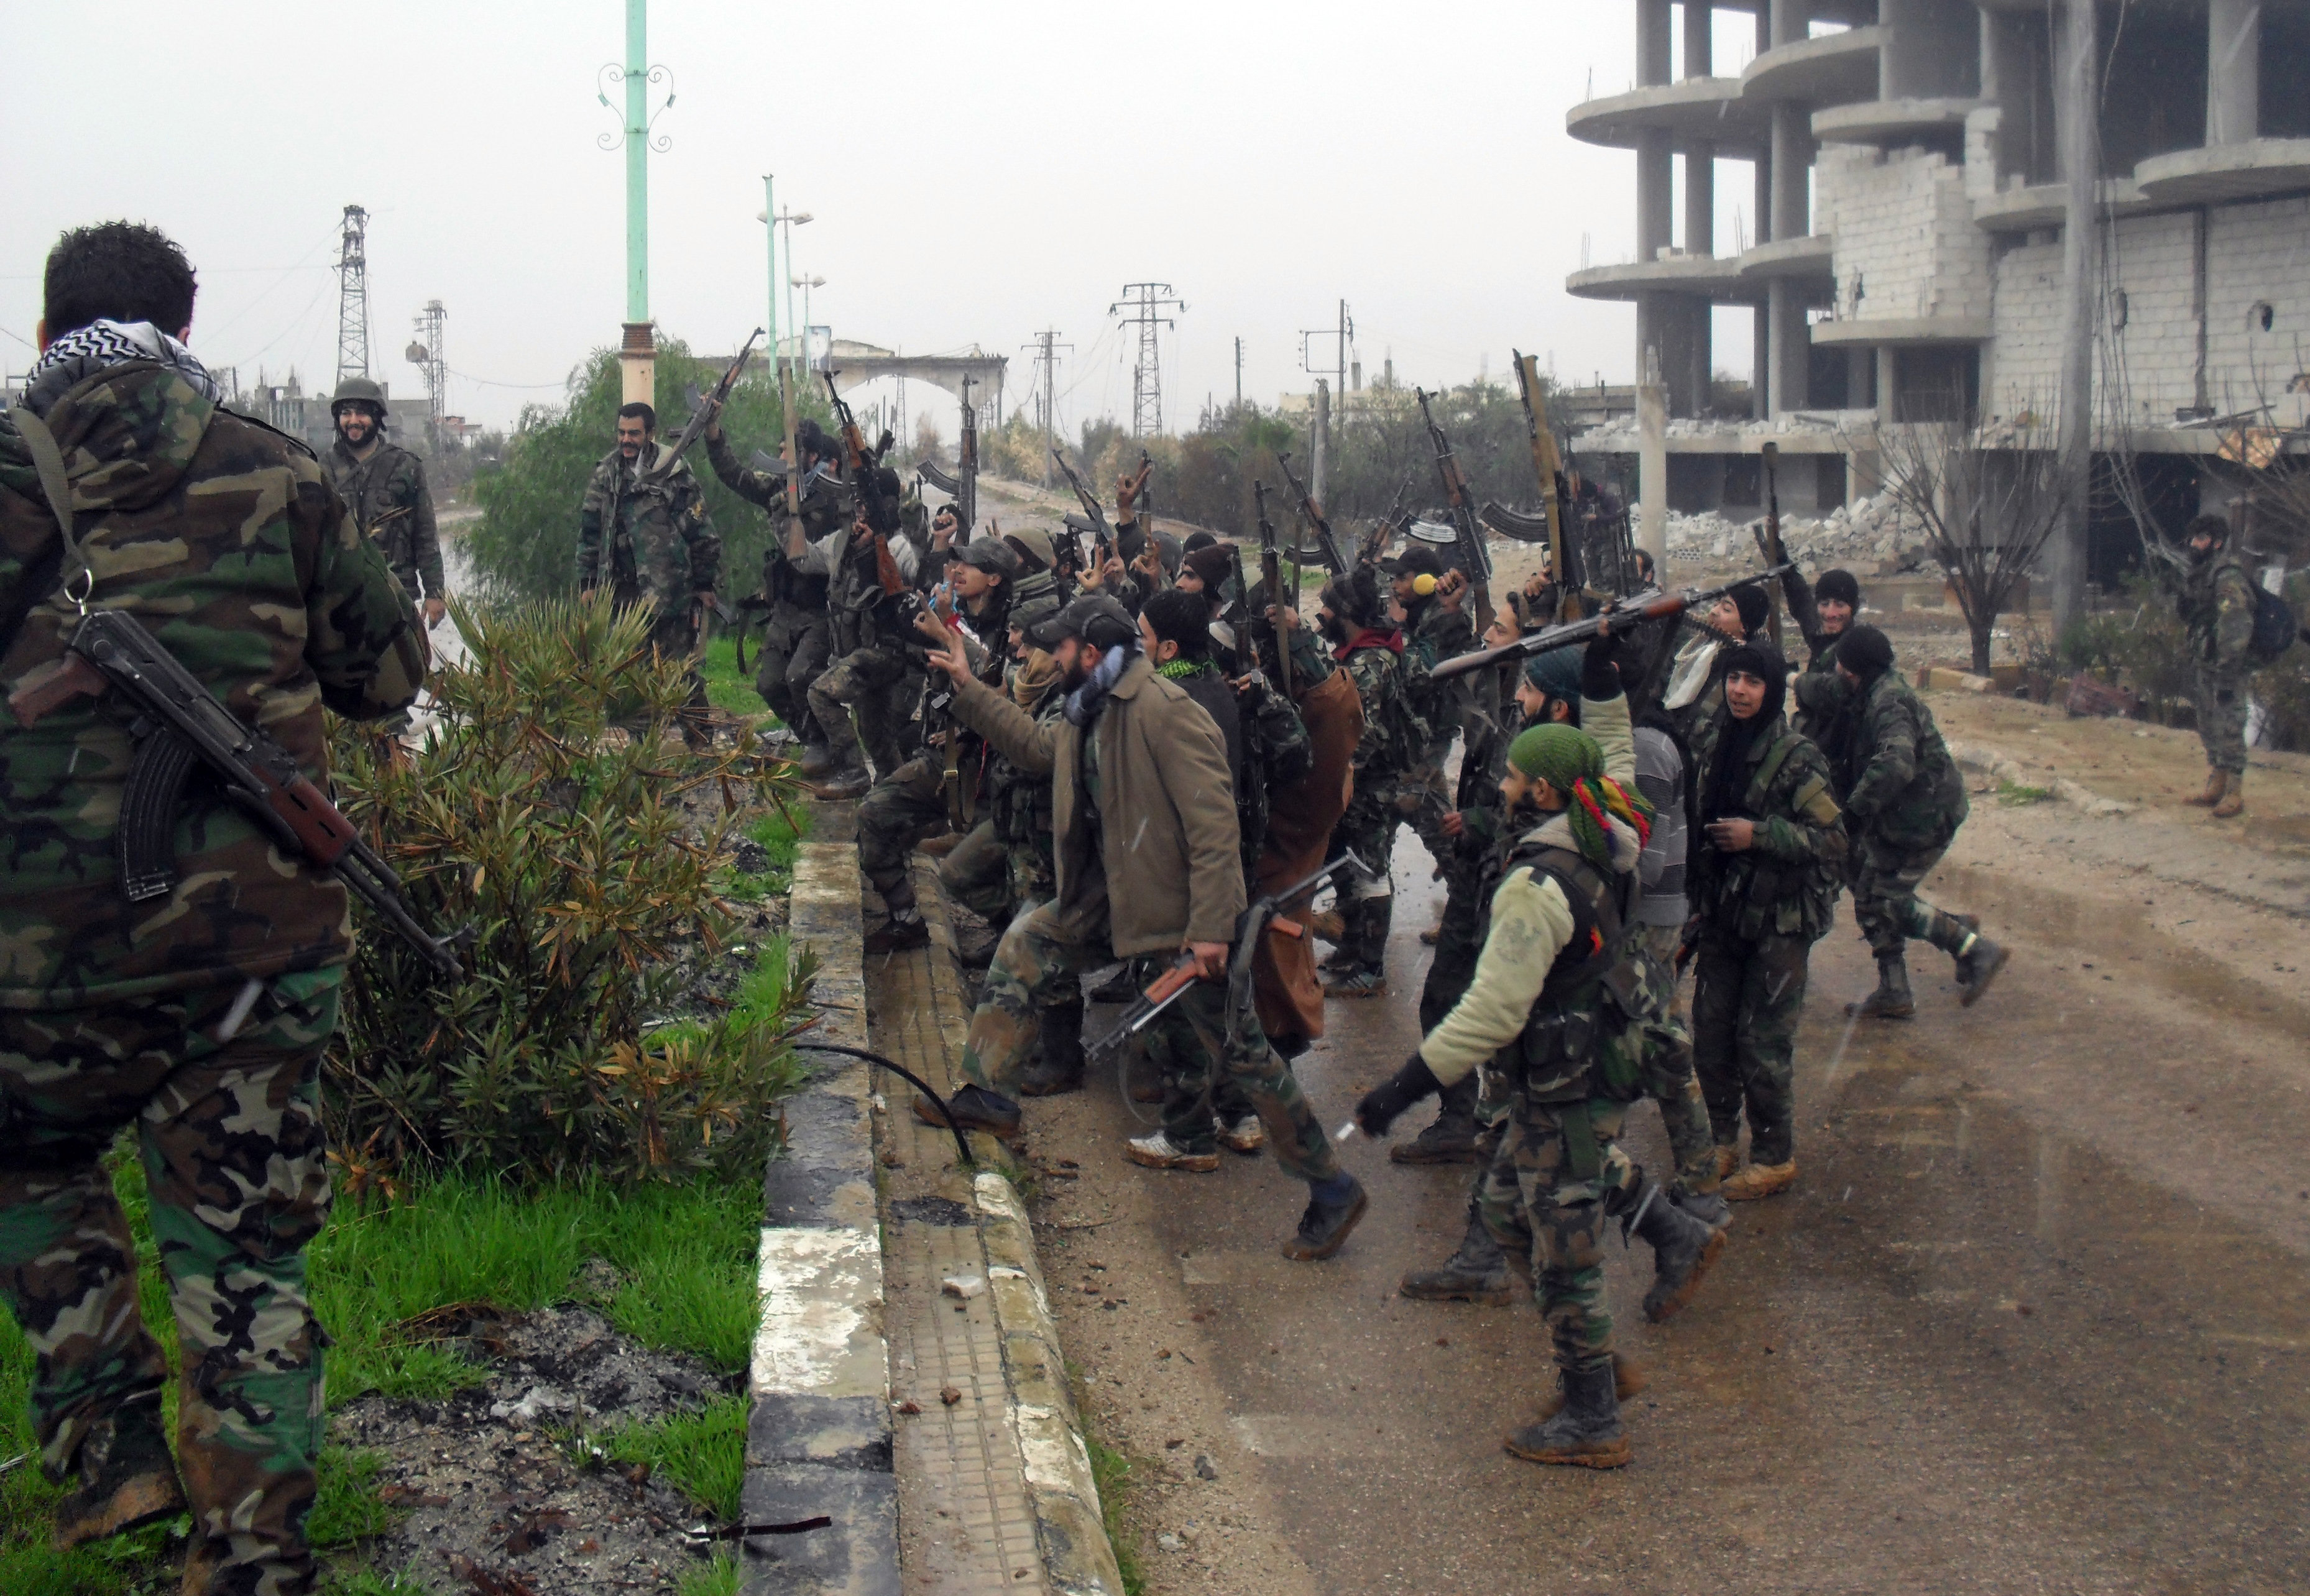 Syrian pro-government forces celebrate on a street in the town of Sheikh Miskeen in southern Daraa province on January 26, 2016 after they retook the strategic town from terrorists